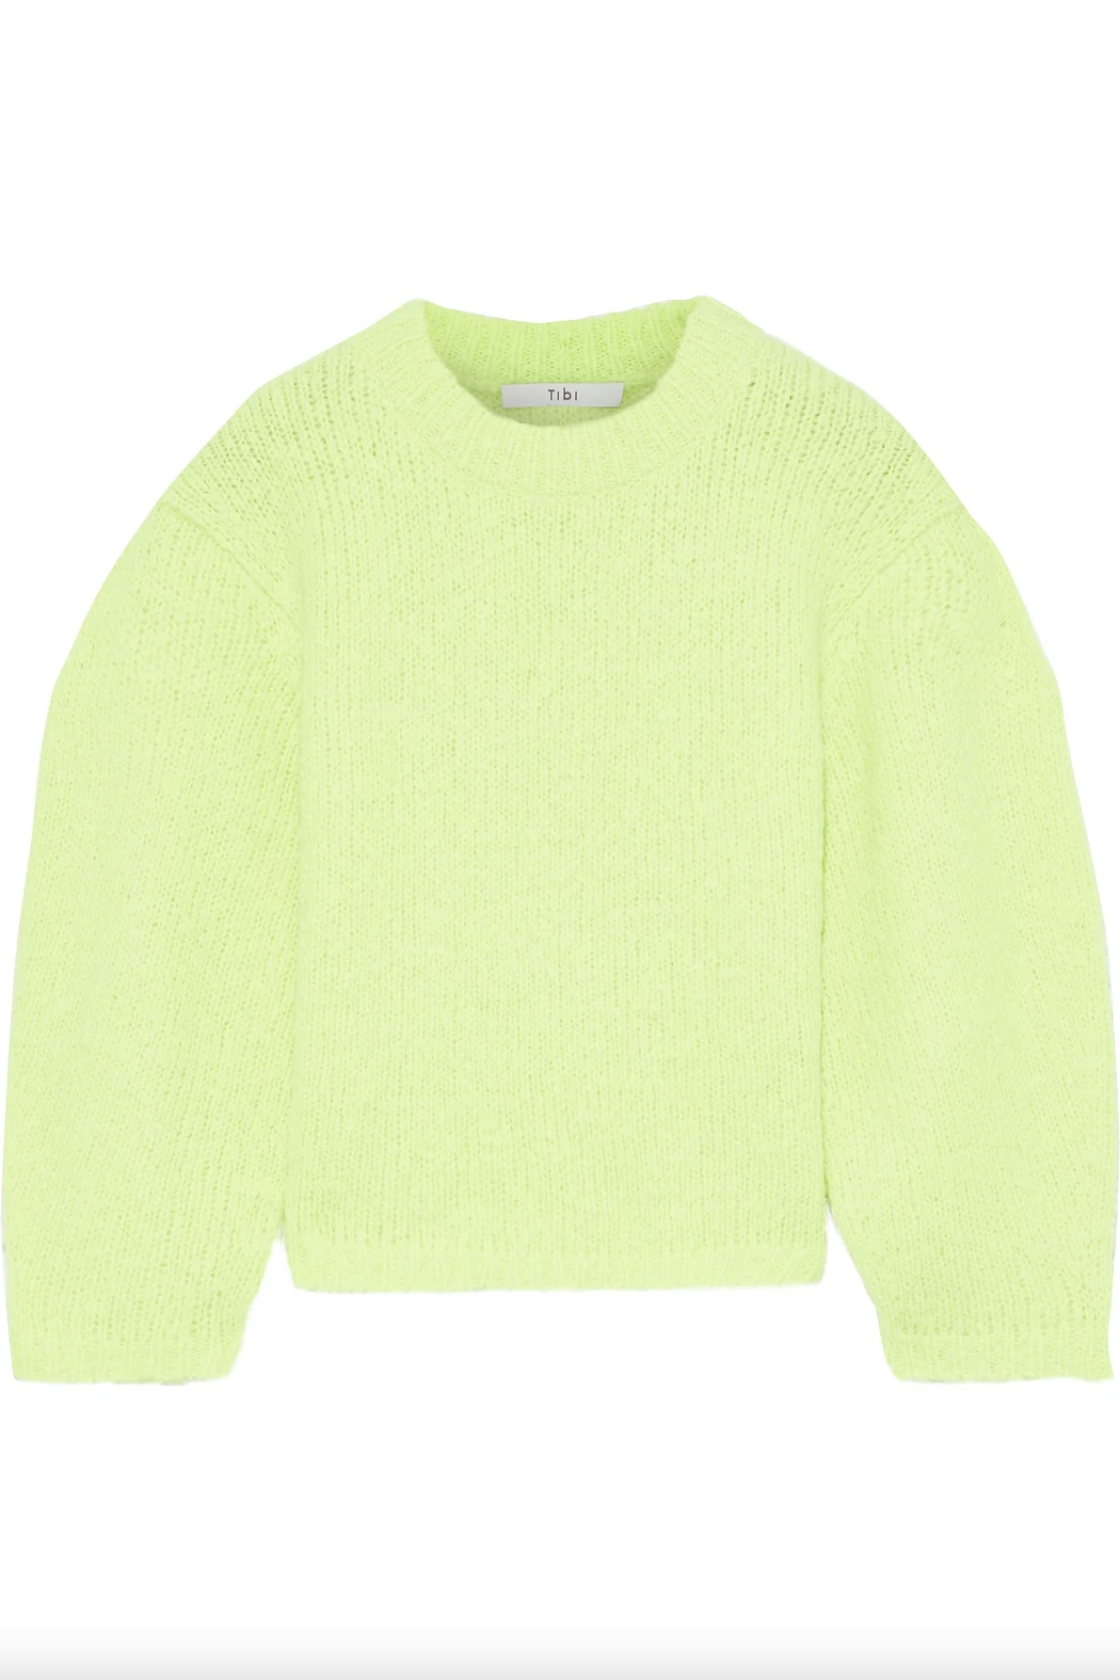 Tibi Cozette cropped neon alpaca-blend sweater